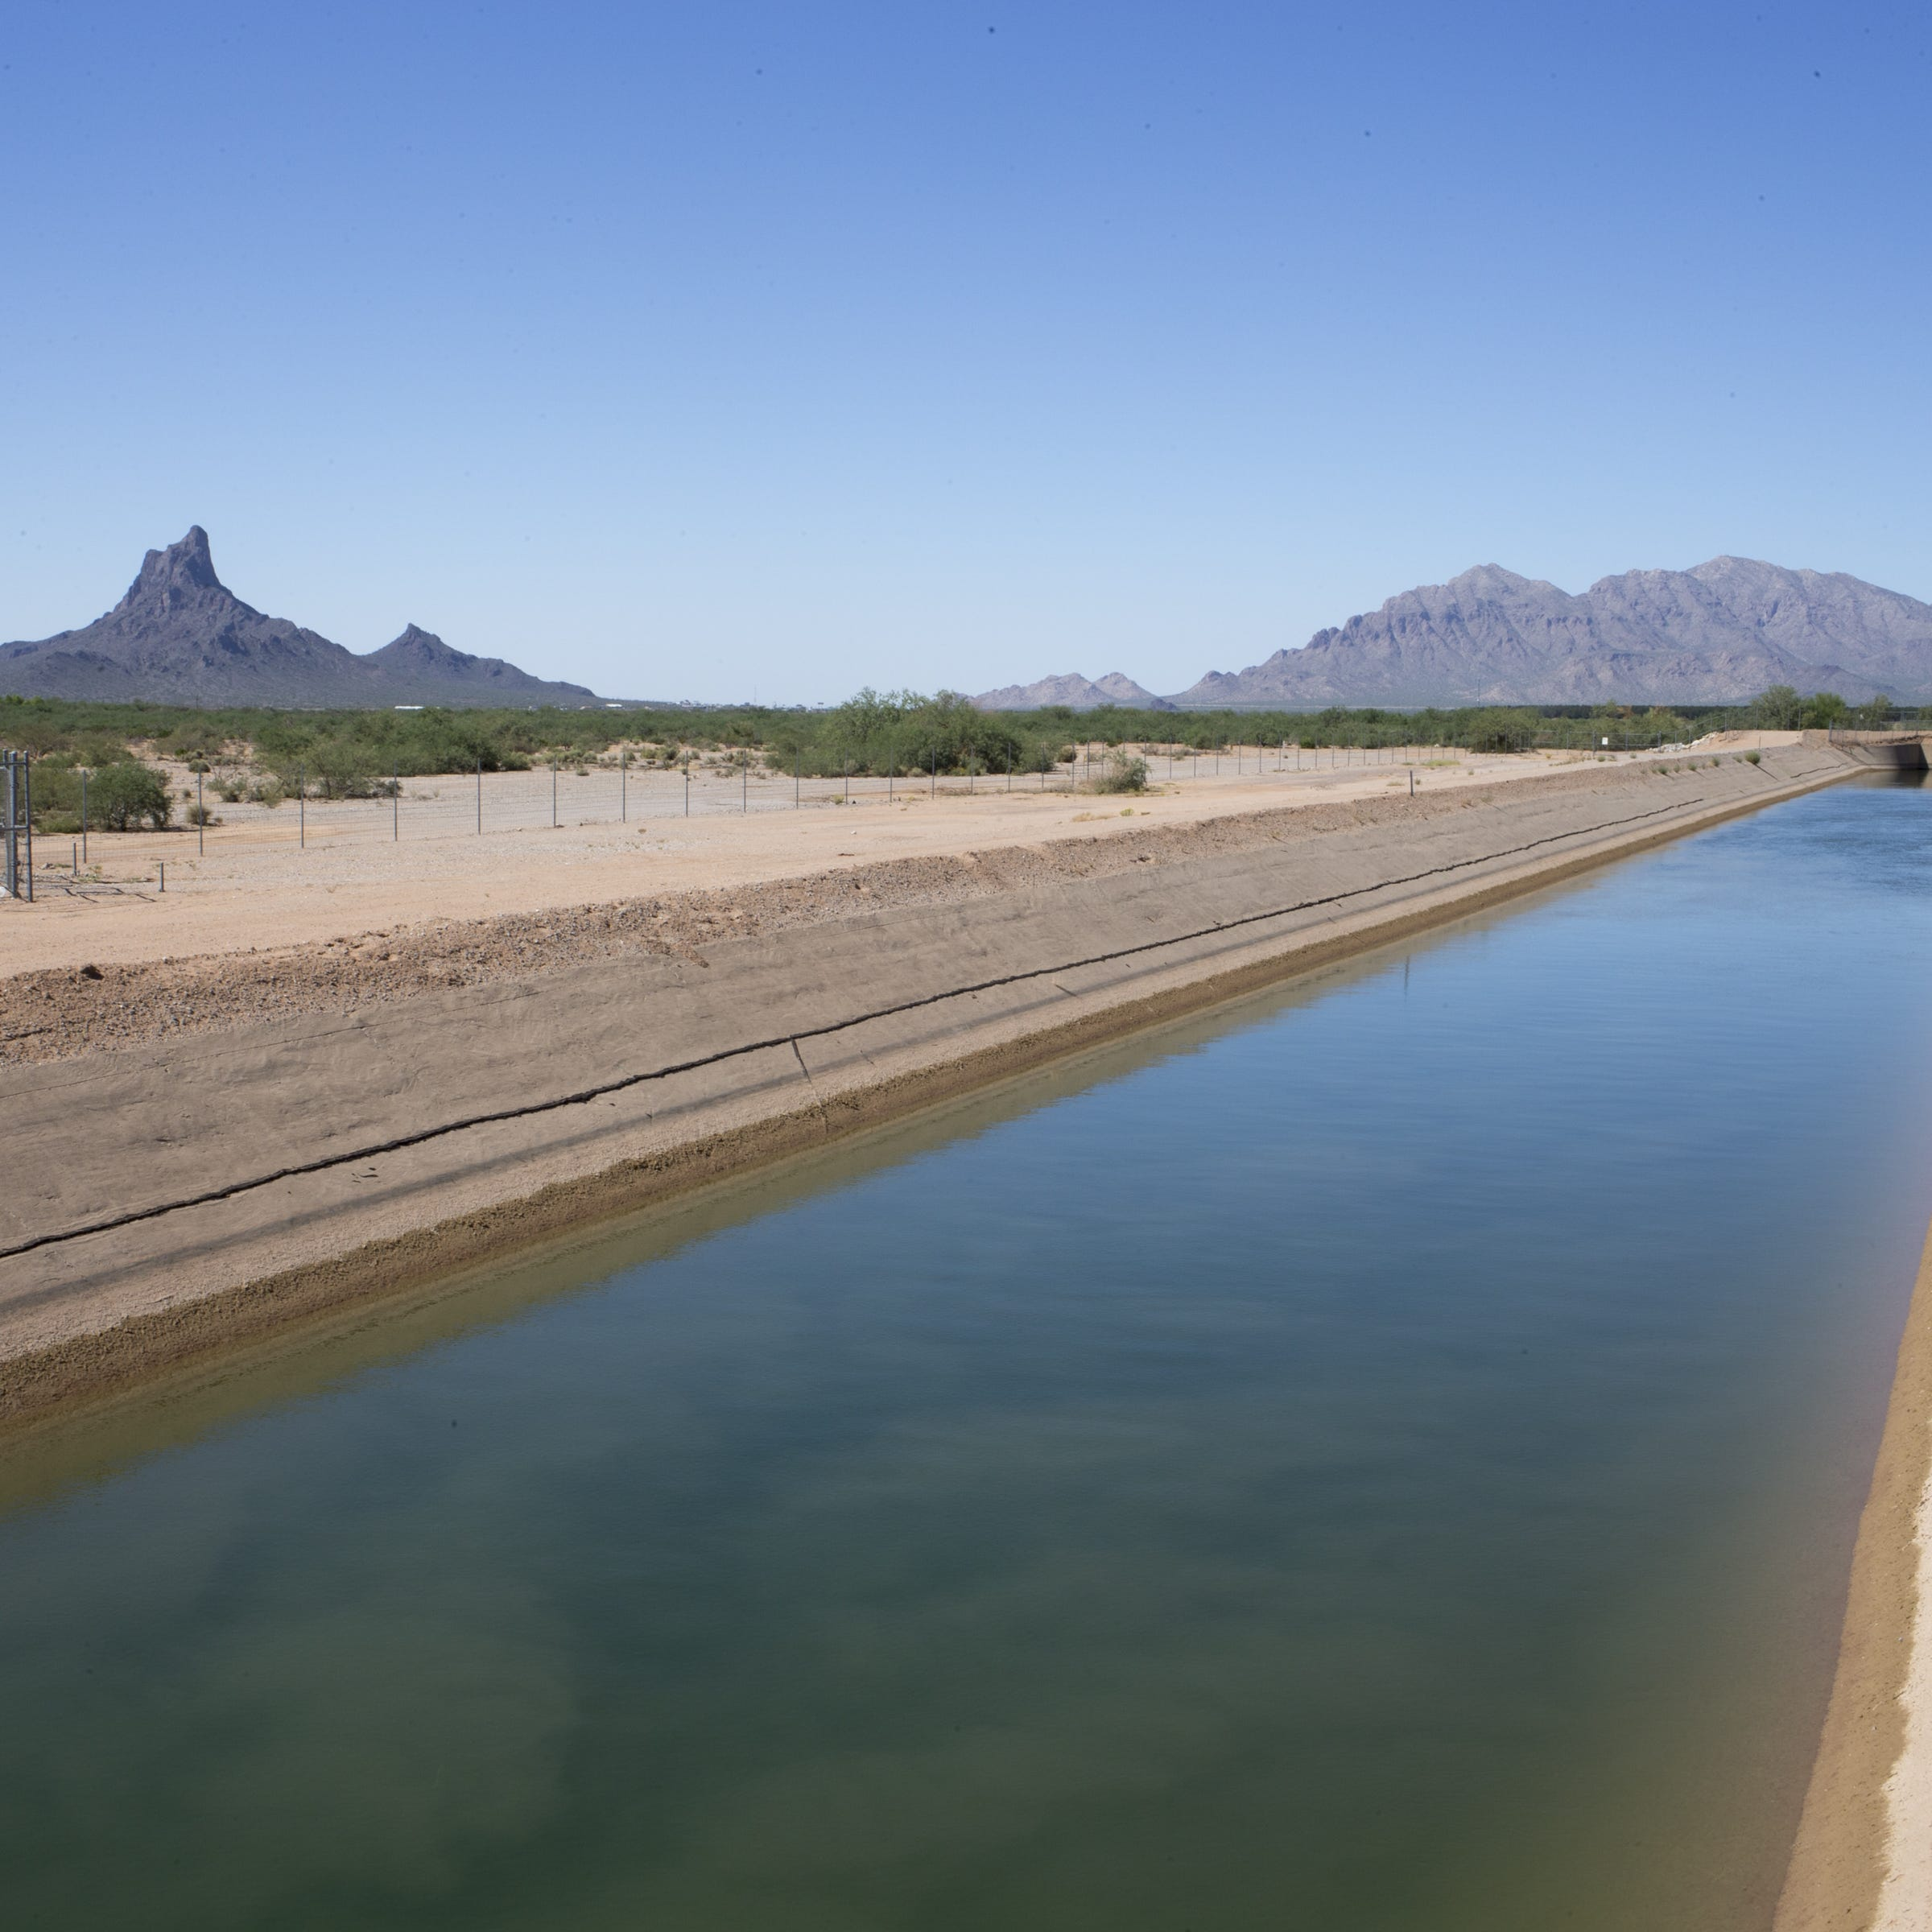 Arizona cancels water meeting amid difficult negotiations on Colorado River deal